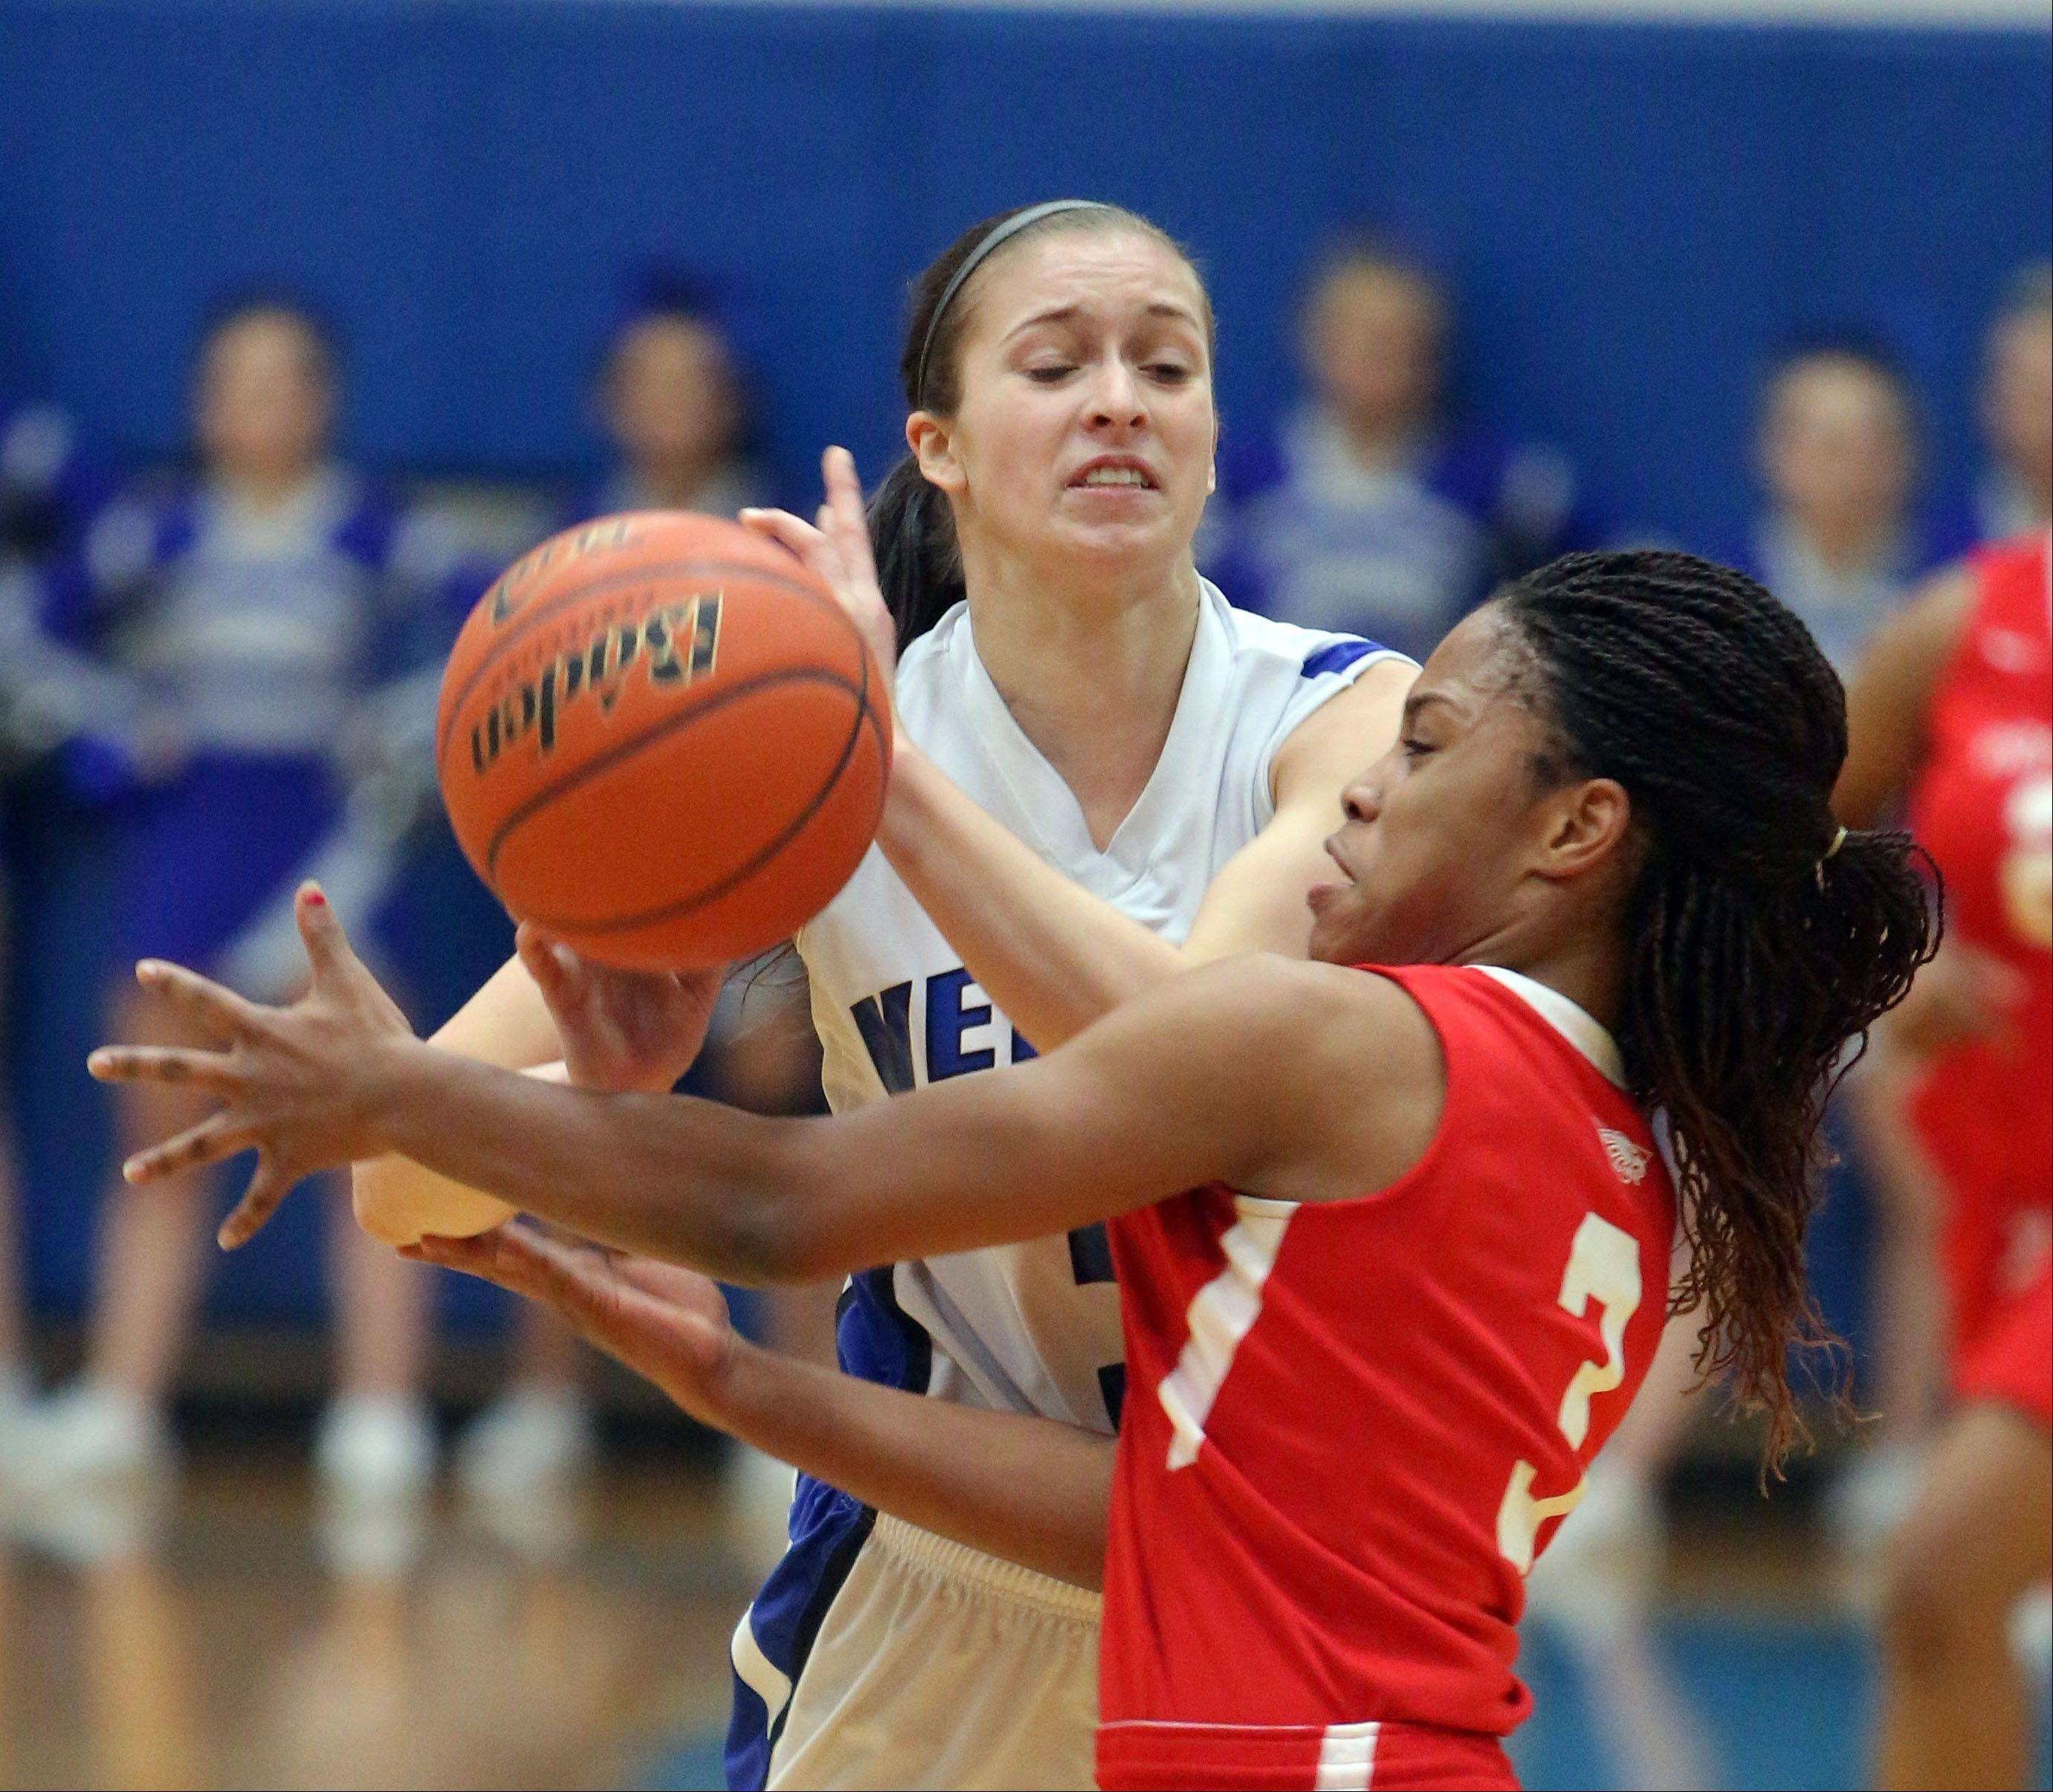 Vernon Hills' Dana Meline, left, and North Chicago's Alexis Means scramble for a loose ball Wednesday at Vernon Hills.